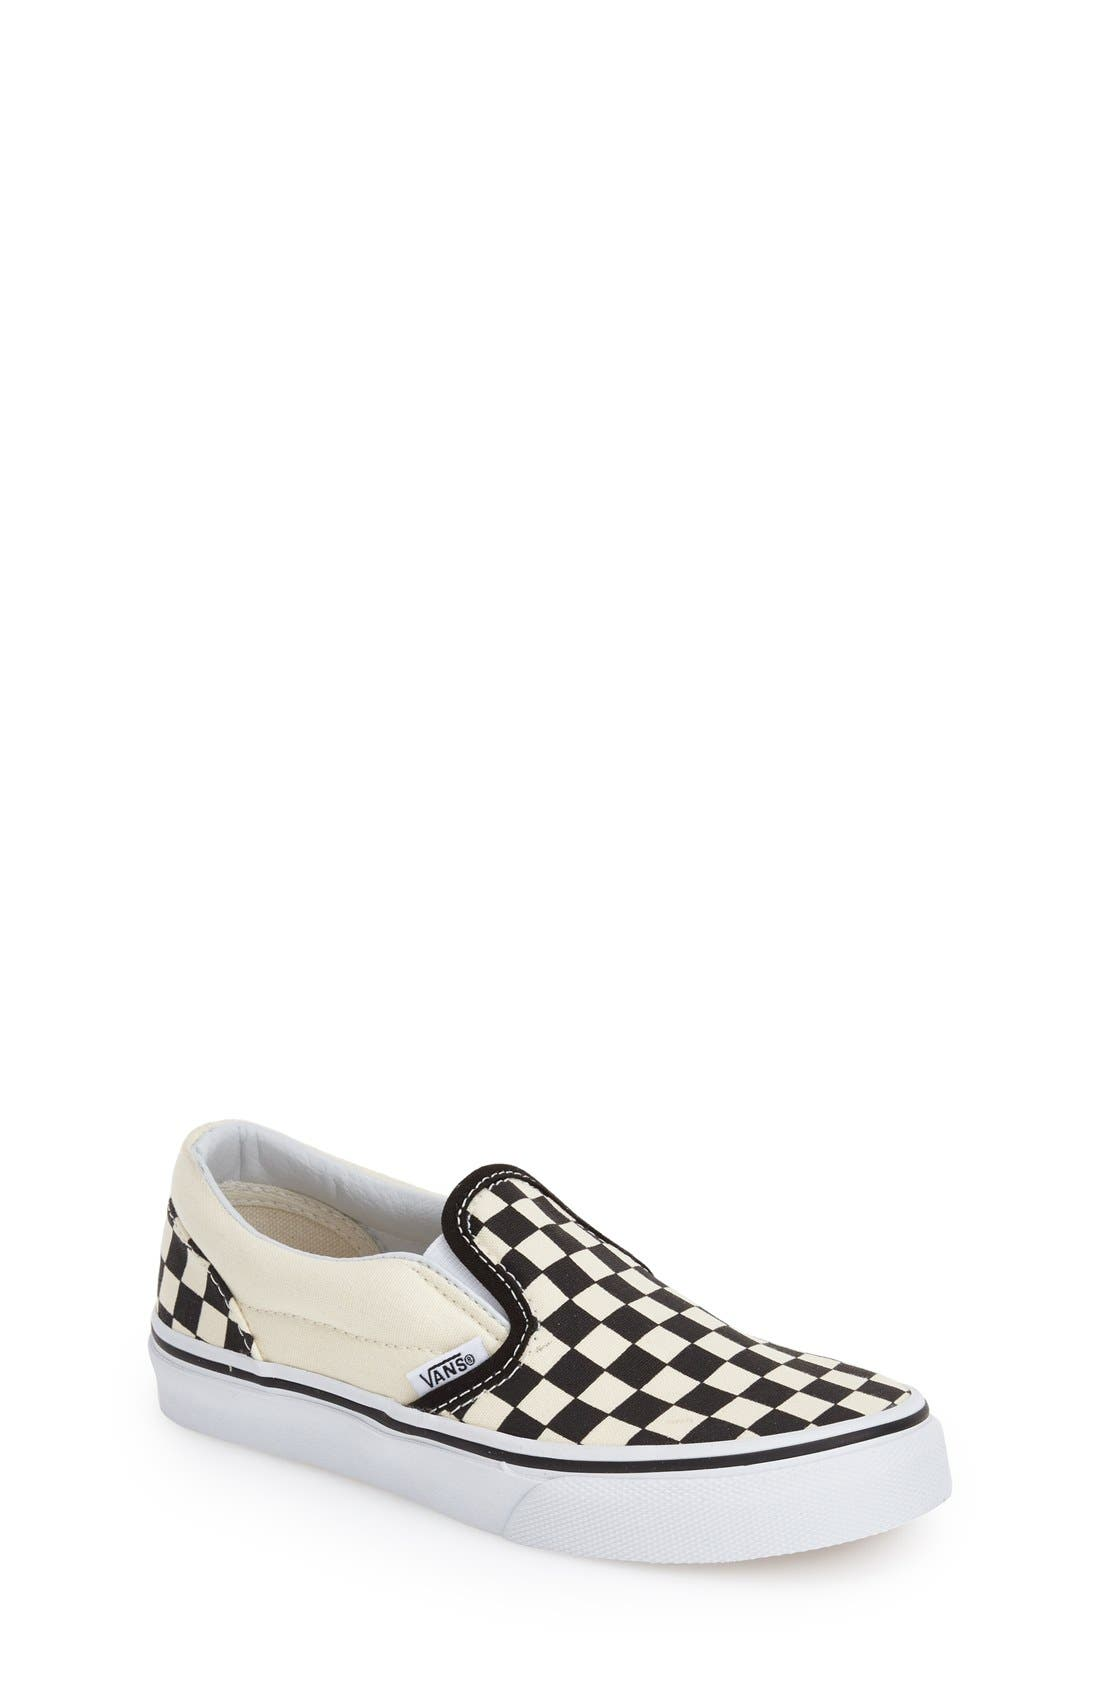 'Classic - Checker' Slip-On,                             Main thumbnail 1, color,                             Checkerboard/ Black/ White